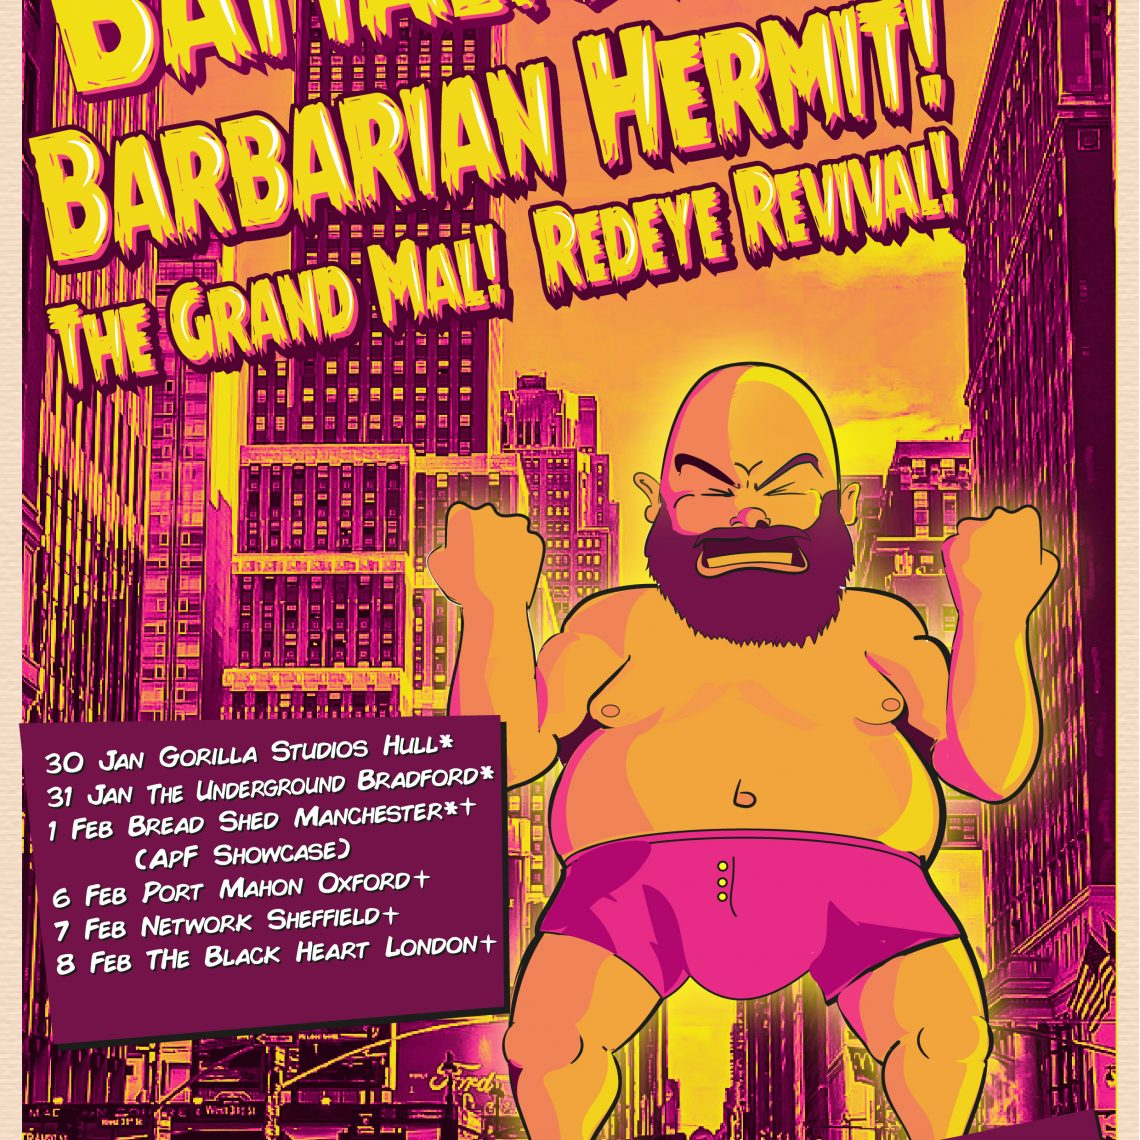 APF Records – Barbarian Hermit, Battalions and Red Eye Revival – Gorilla Studios, Hull.